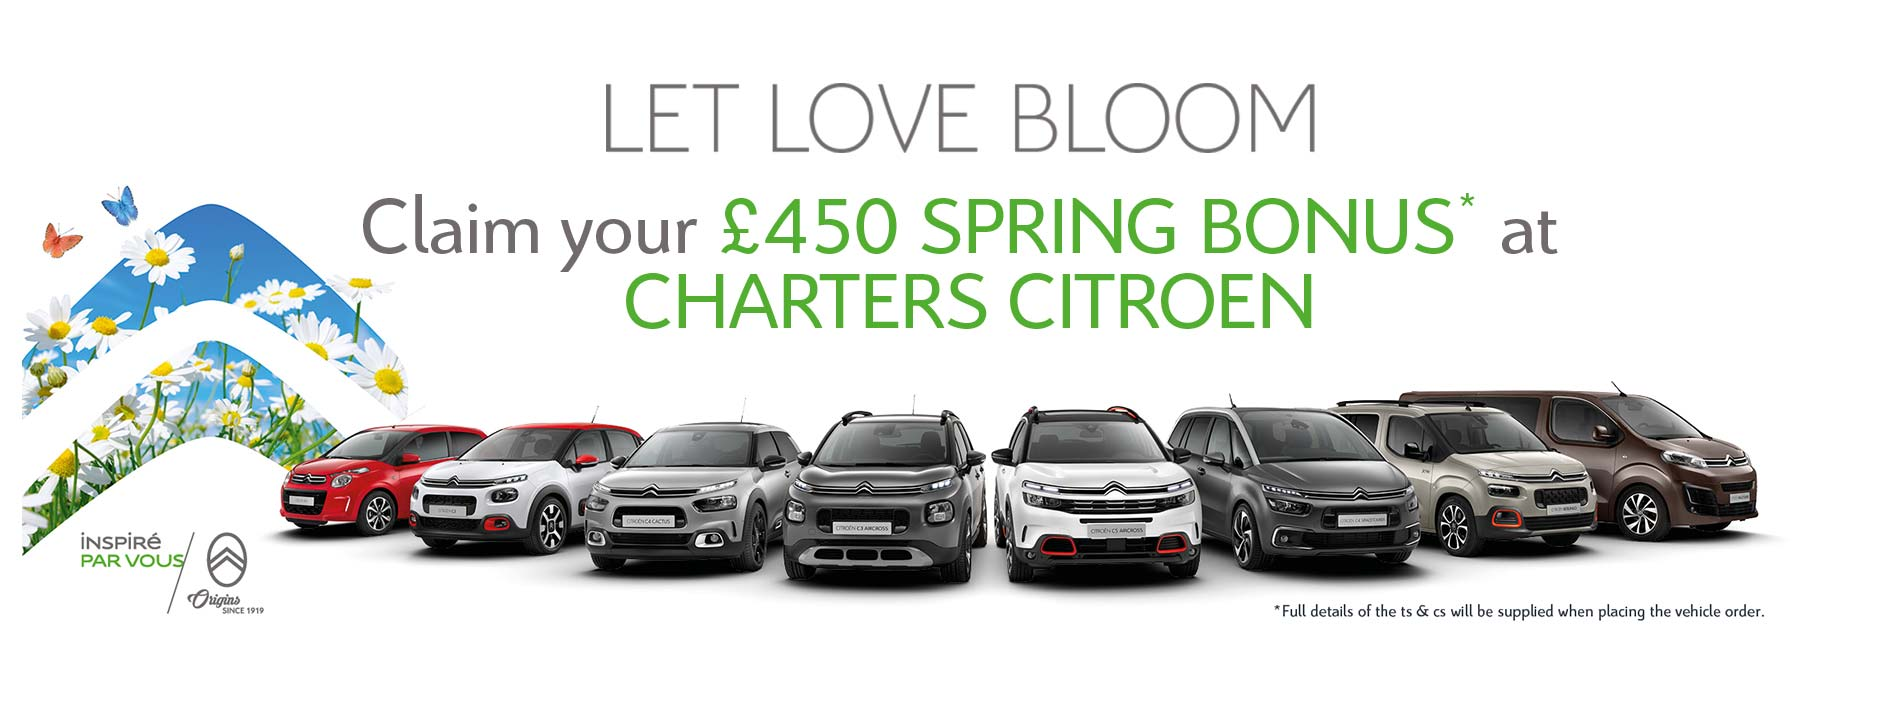 citroen-let-love-bloom-450-bonus-on-new-car-sales-m-sli